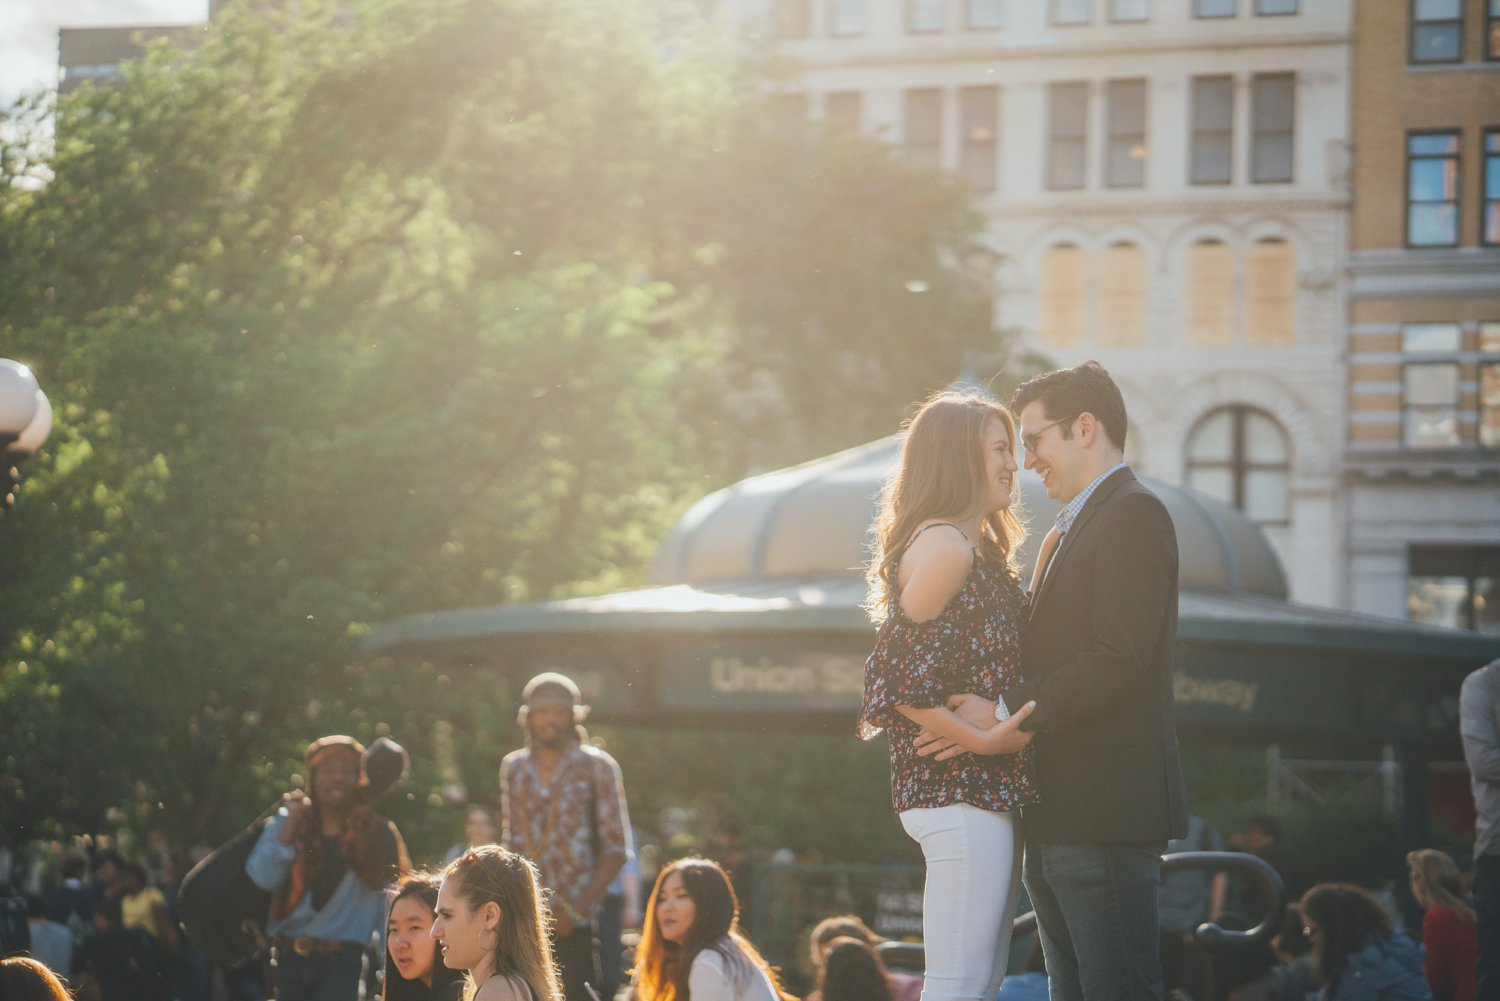 71NYC-NJ-ENGAGEMENT-PHOTOGRAPHY-BY-INTOTHESTORY-MOO-JAE.JPG